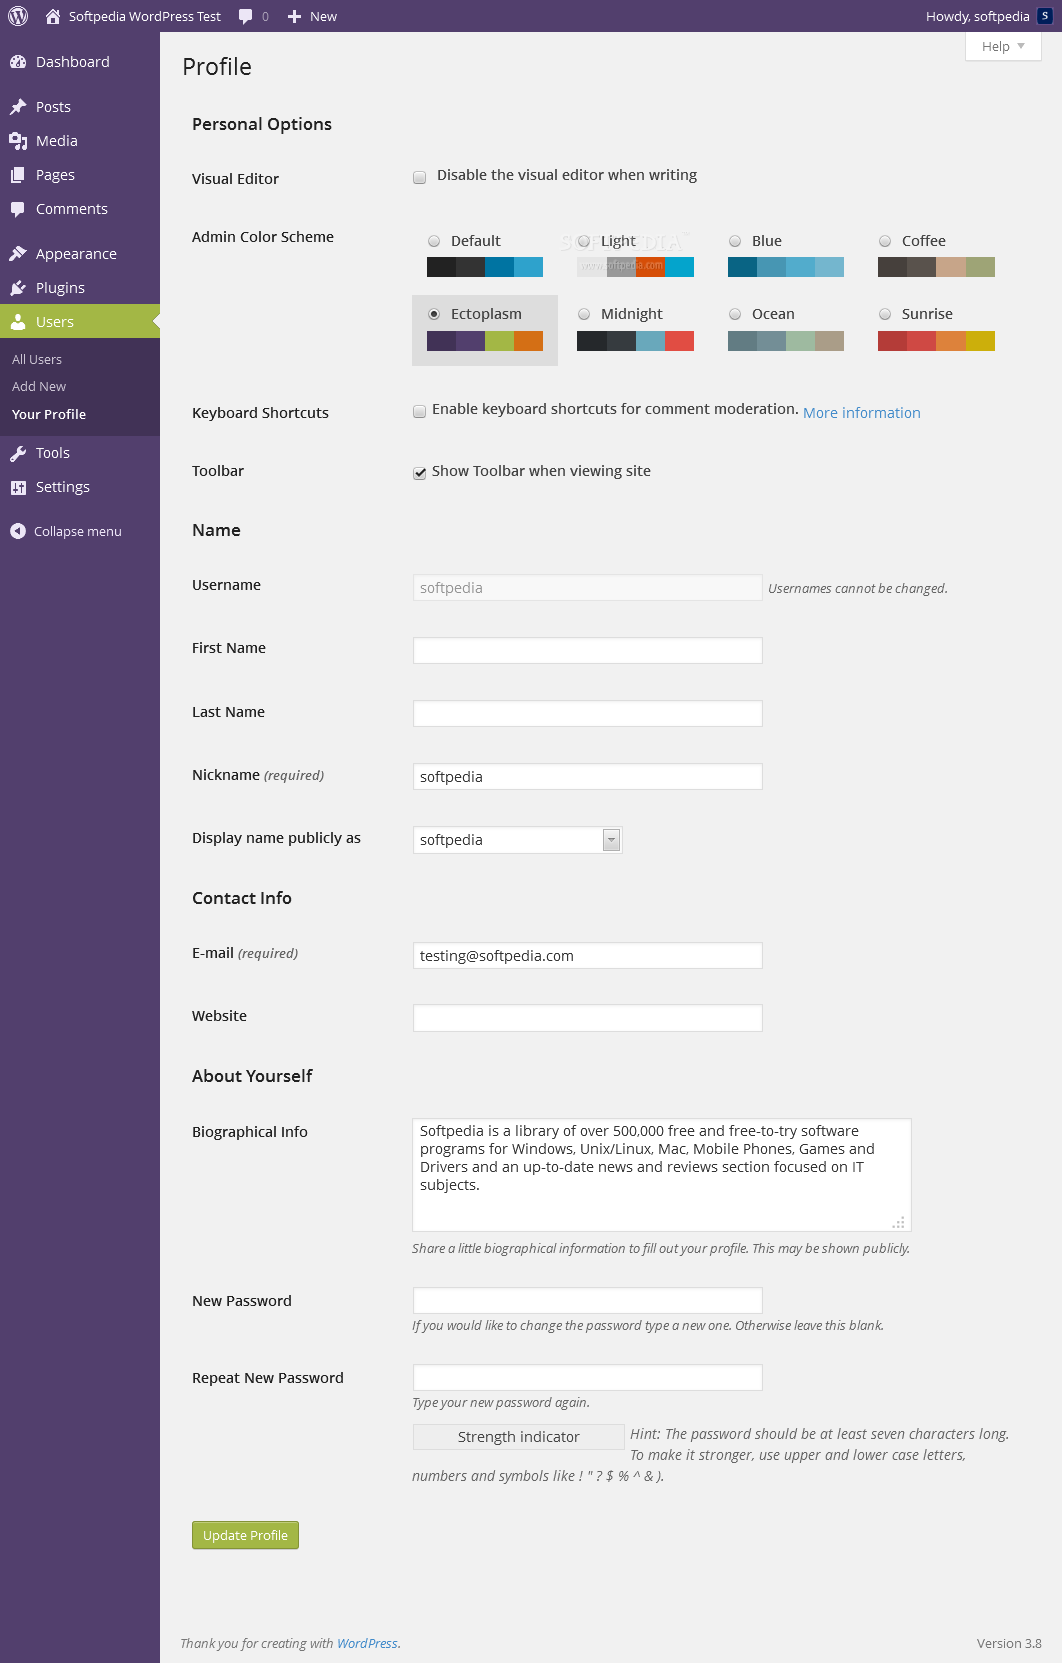 WordPress - A light violet theme named Ectoplasm is also included